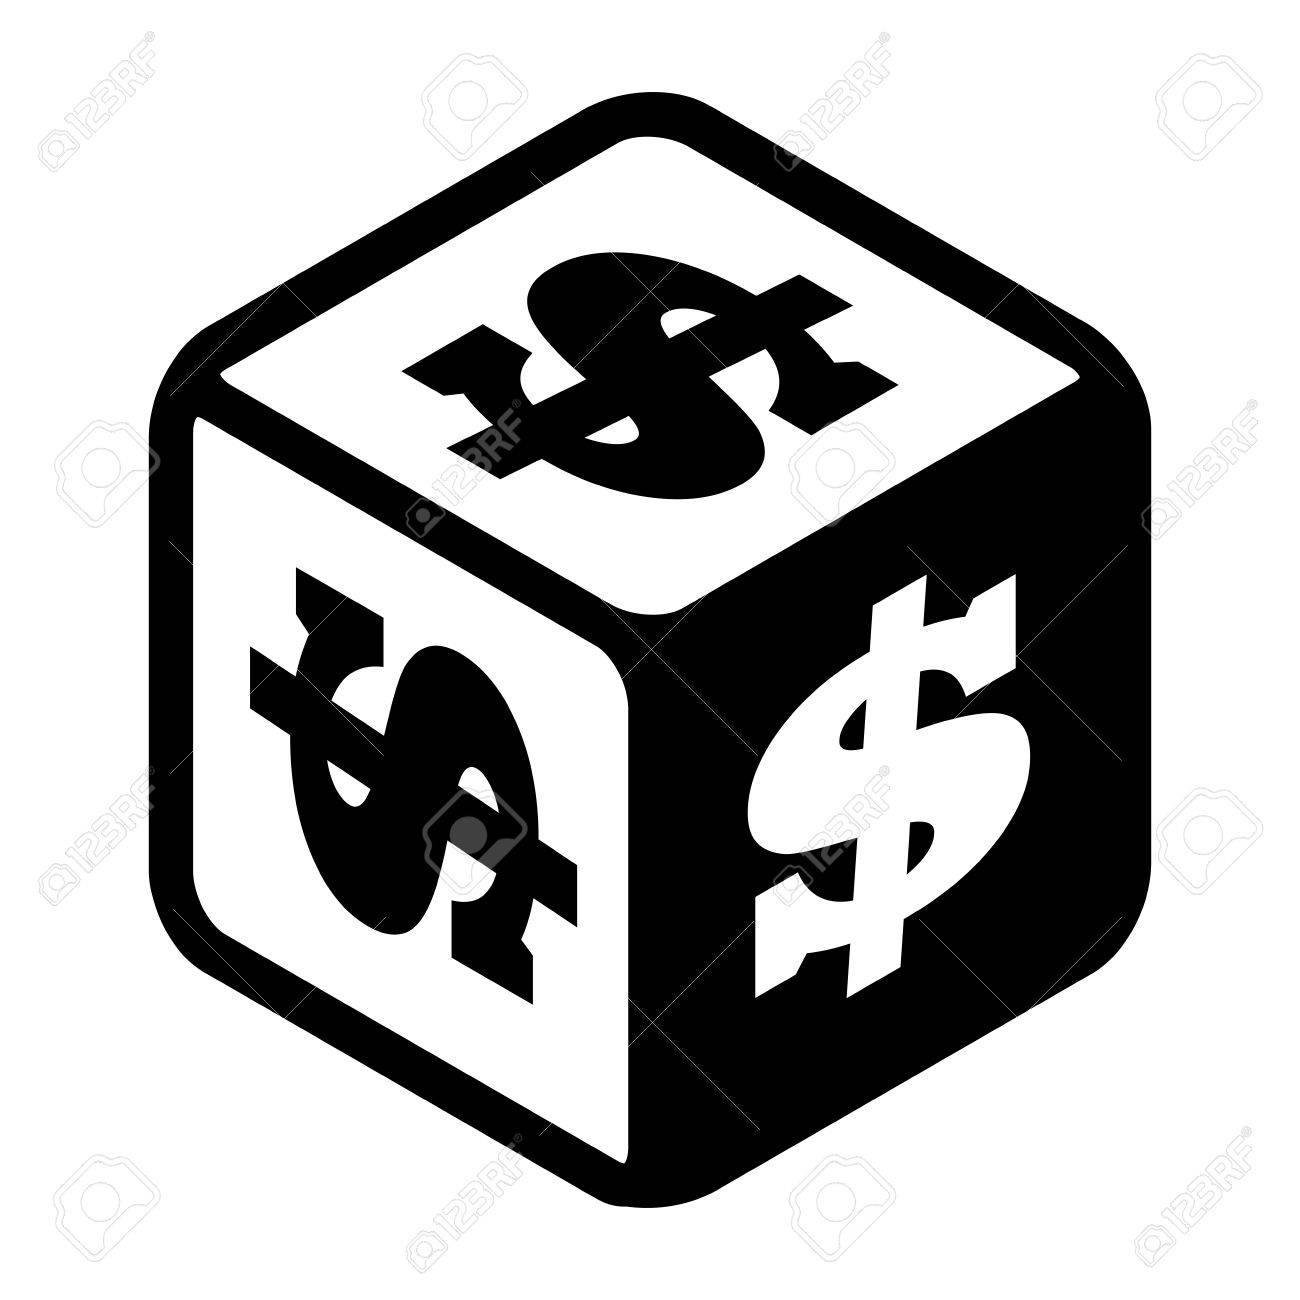 Lucky dice with dollar signs on every side  Big money symbol